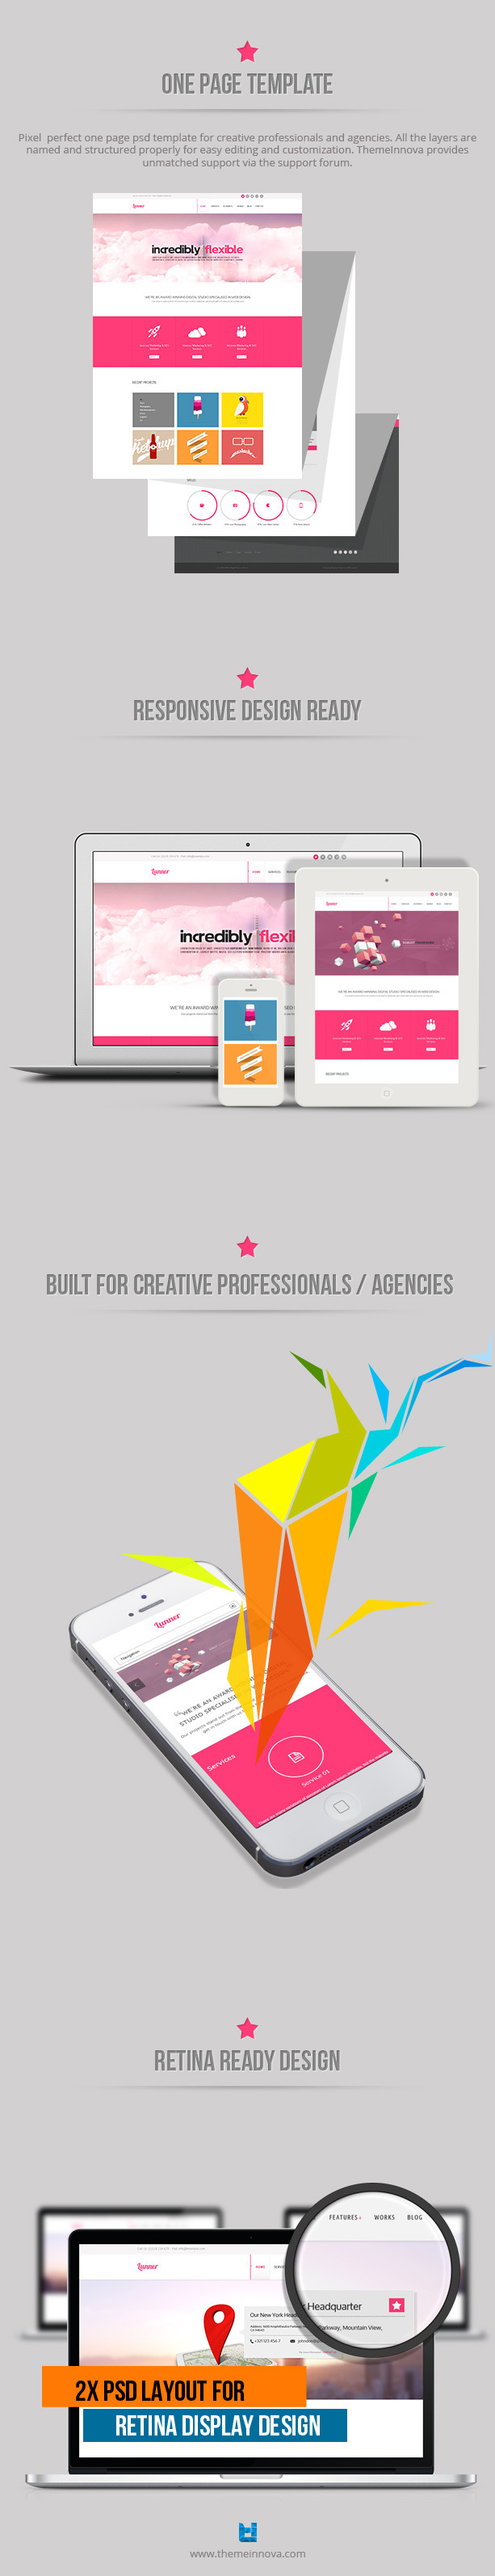 Lunner - One Page Portfolio Template - 5